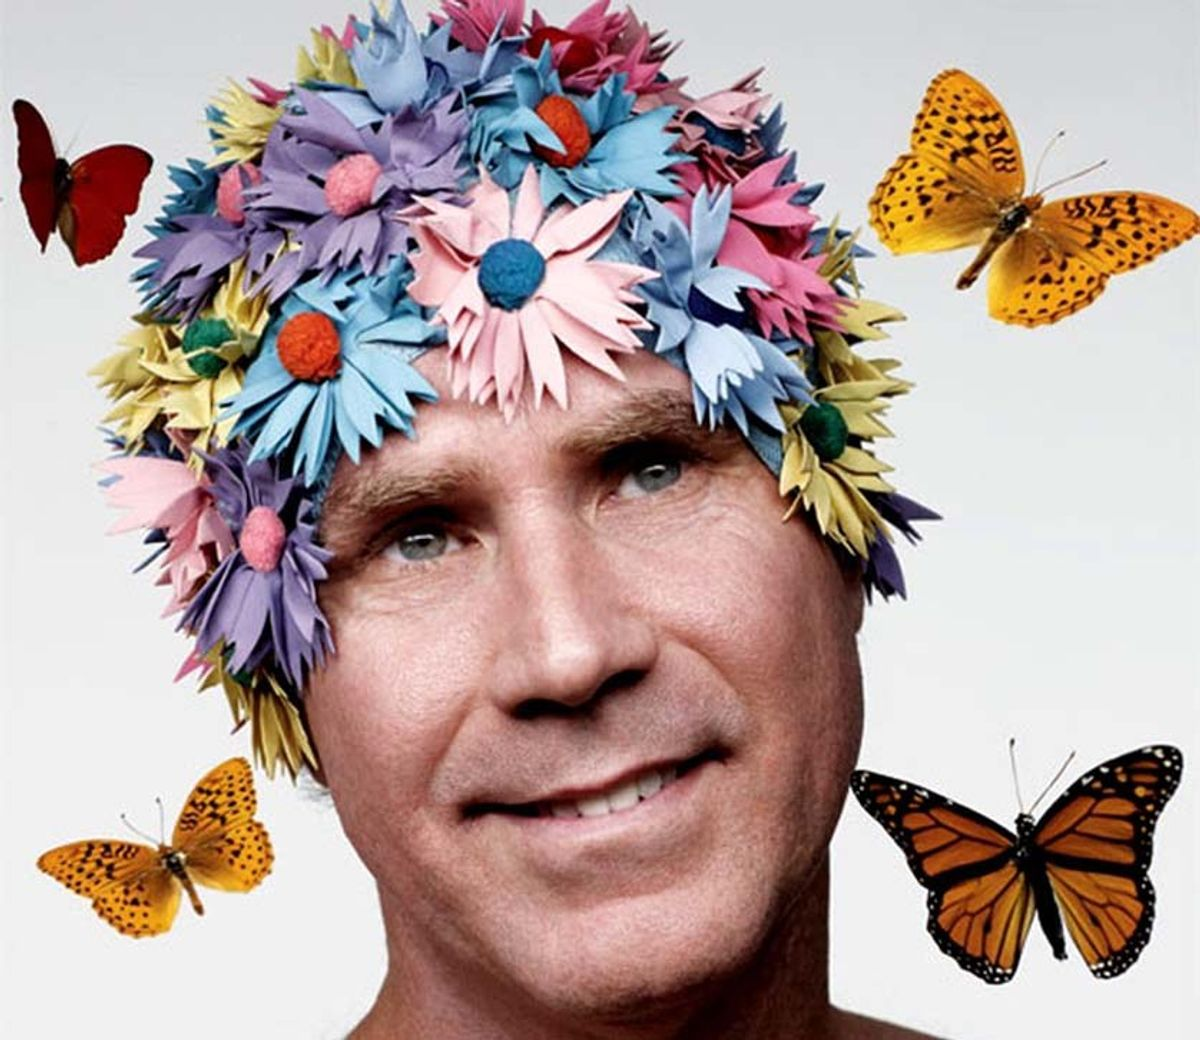 The Definitive Ranking Of The 12 Best Will Ferrell Movie Characters